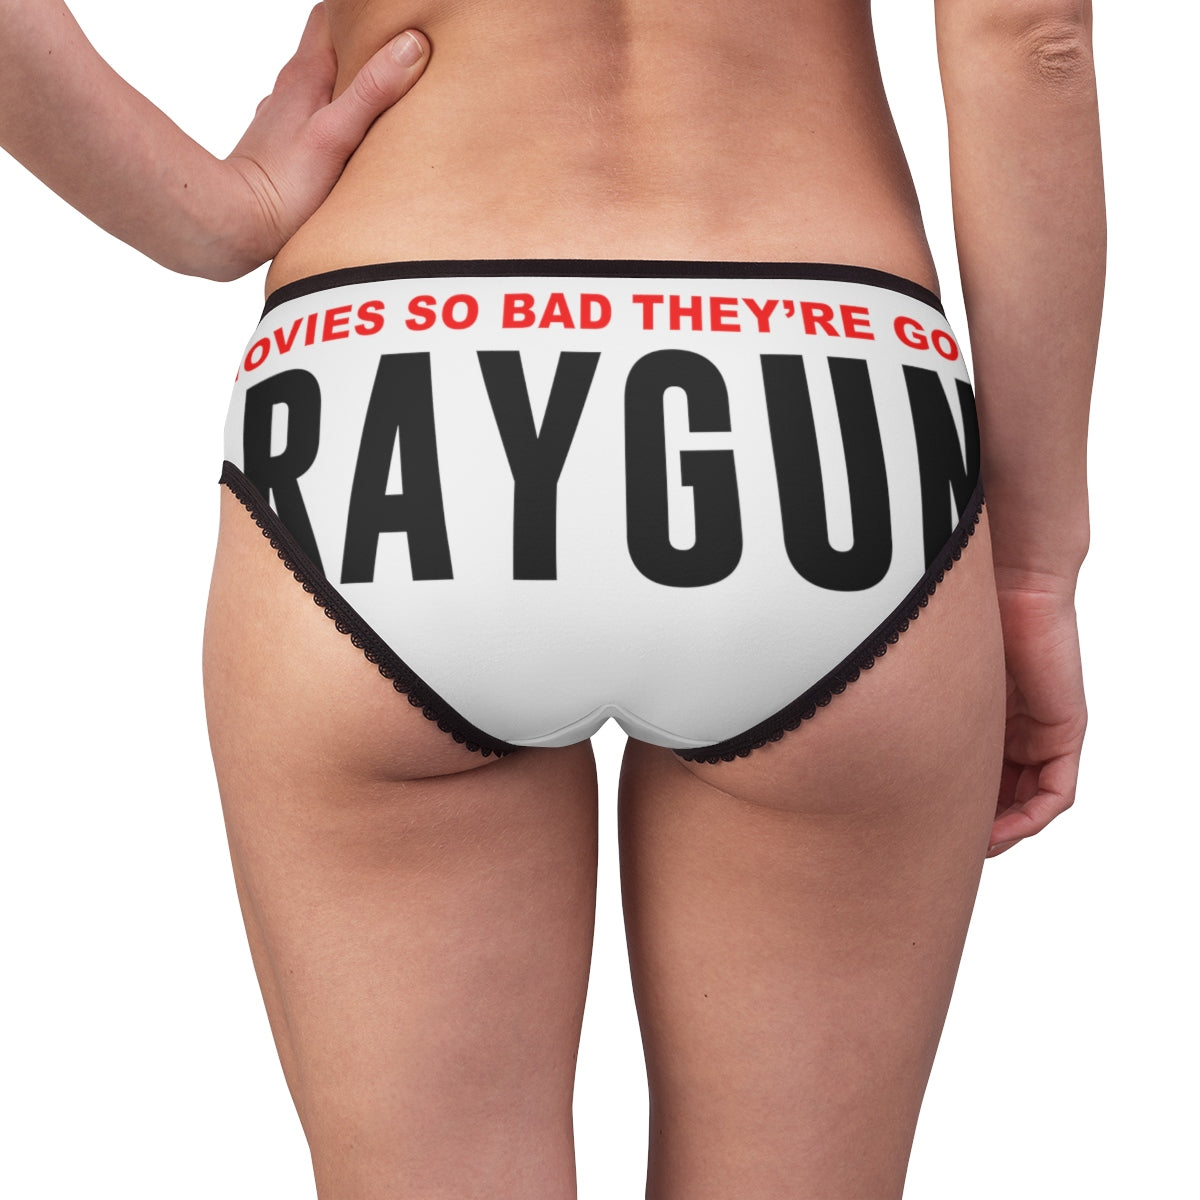 RAYGUN Women's Briefs